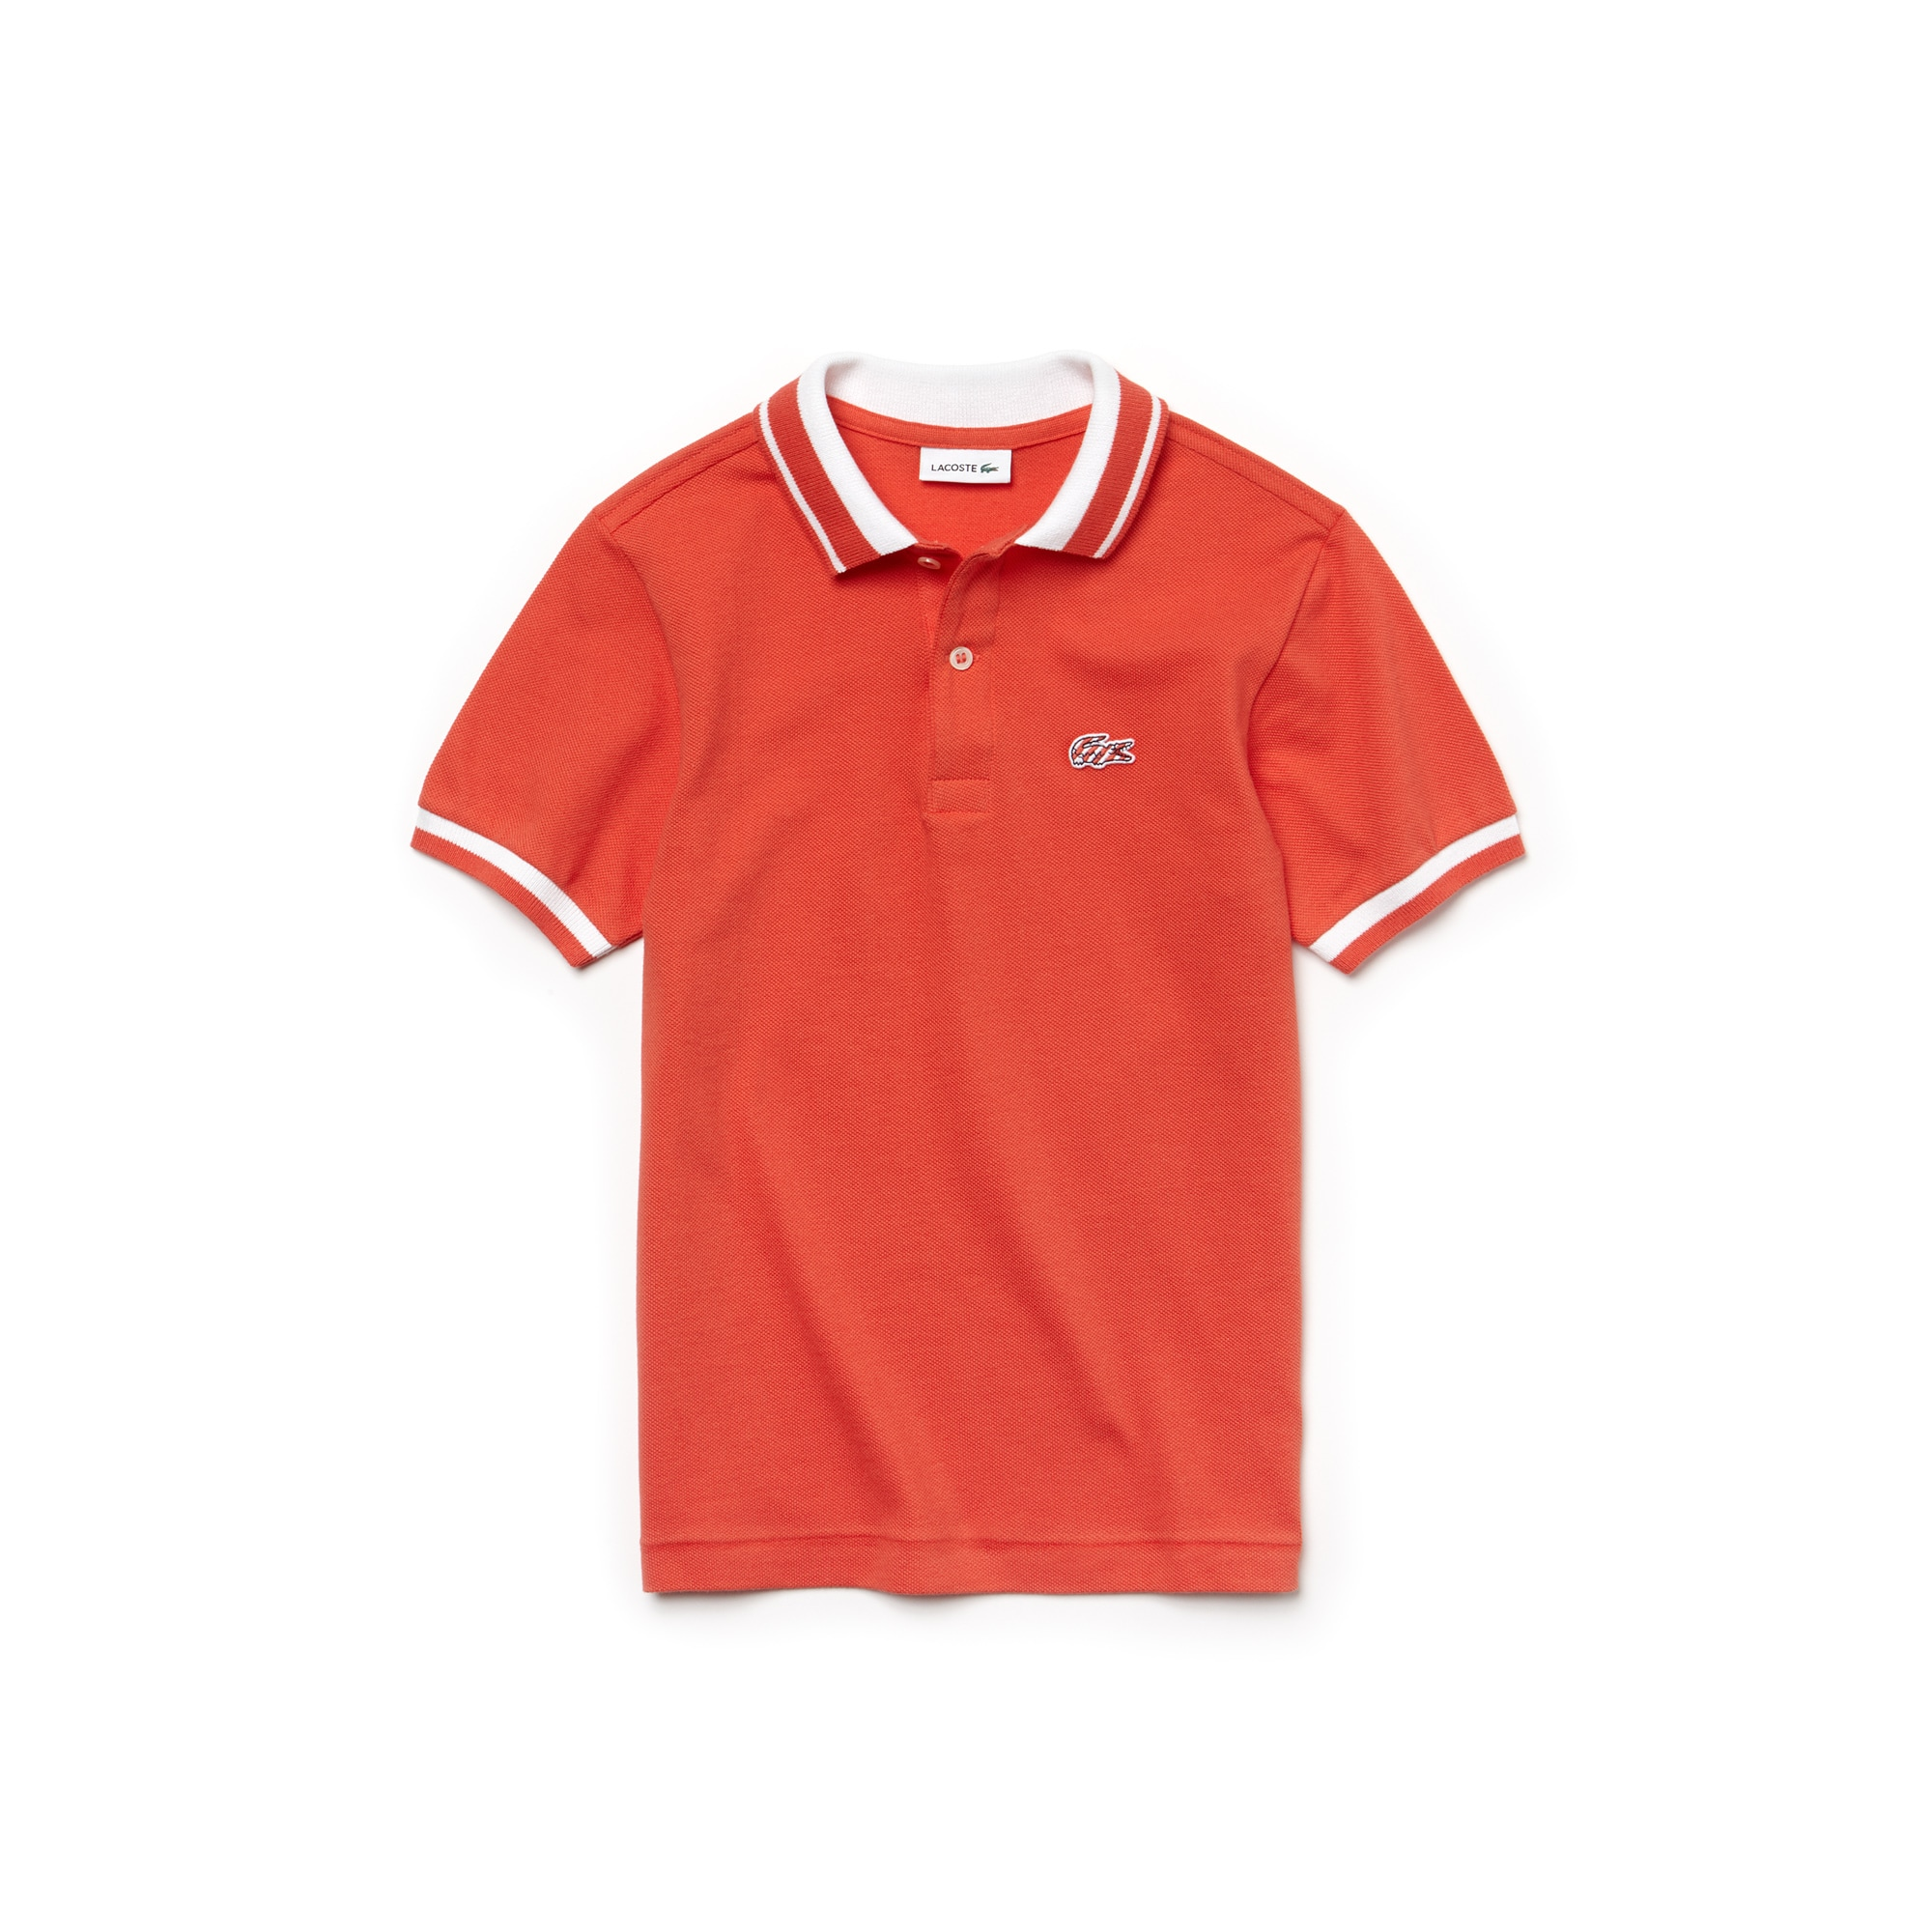 Kids' Lacoste classic fit Polo Shirt in two-ply fine piqué